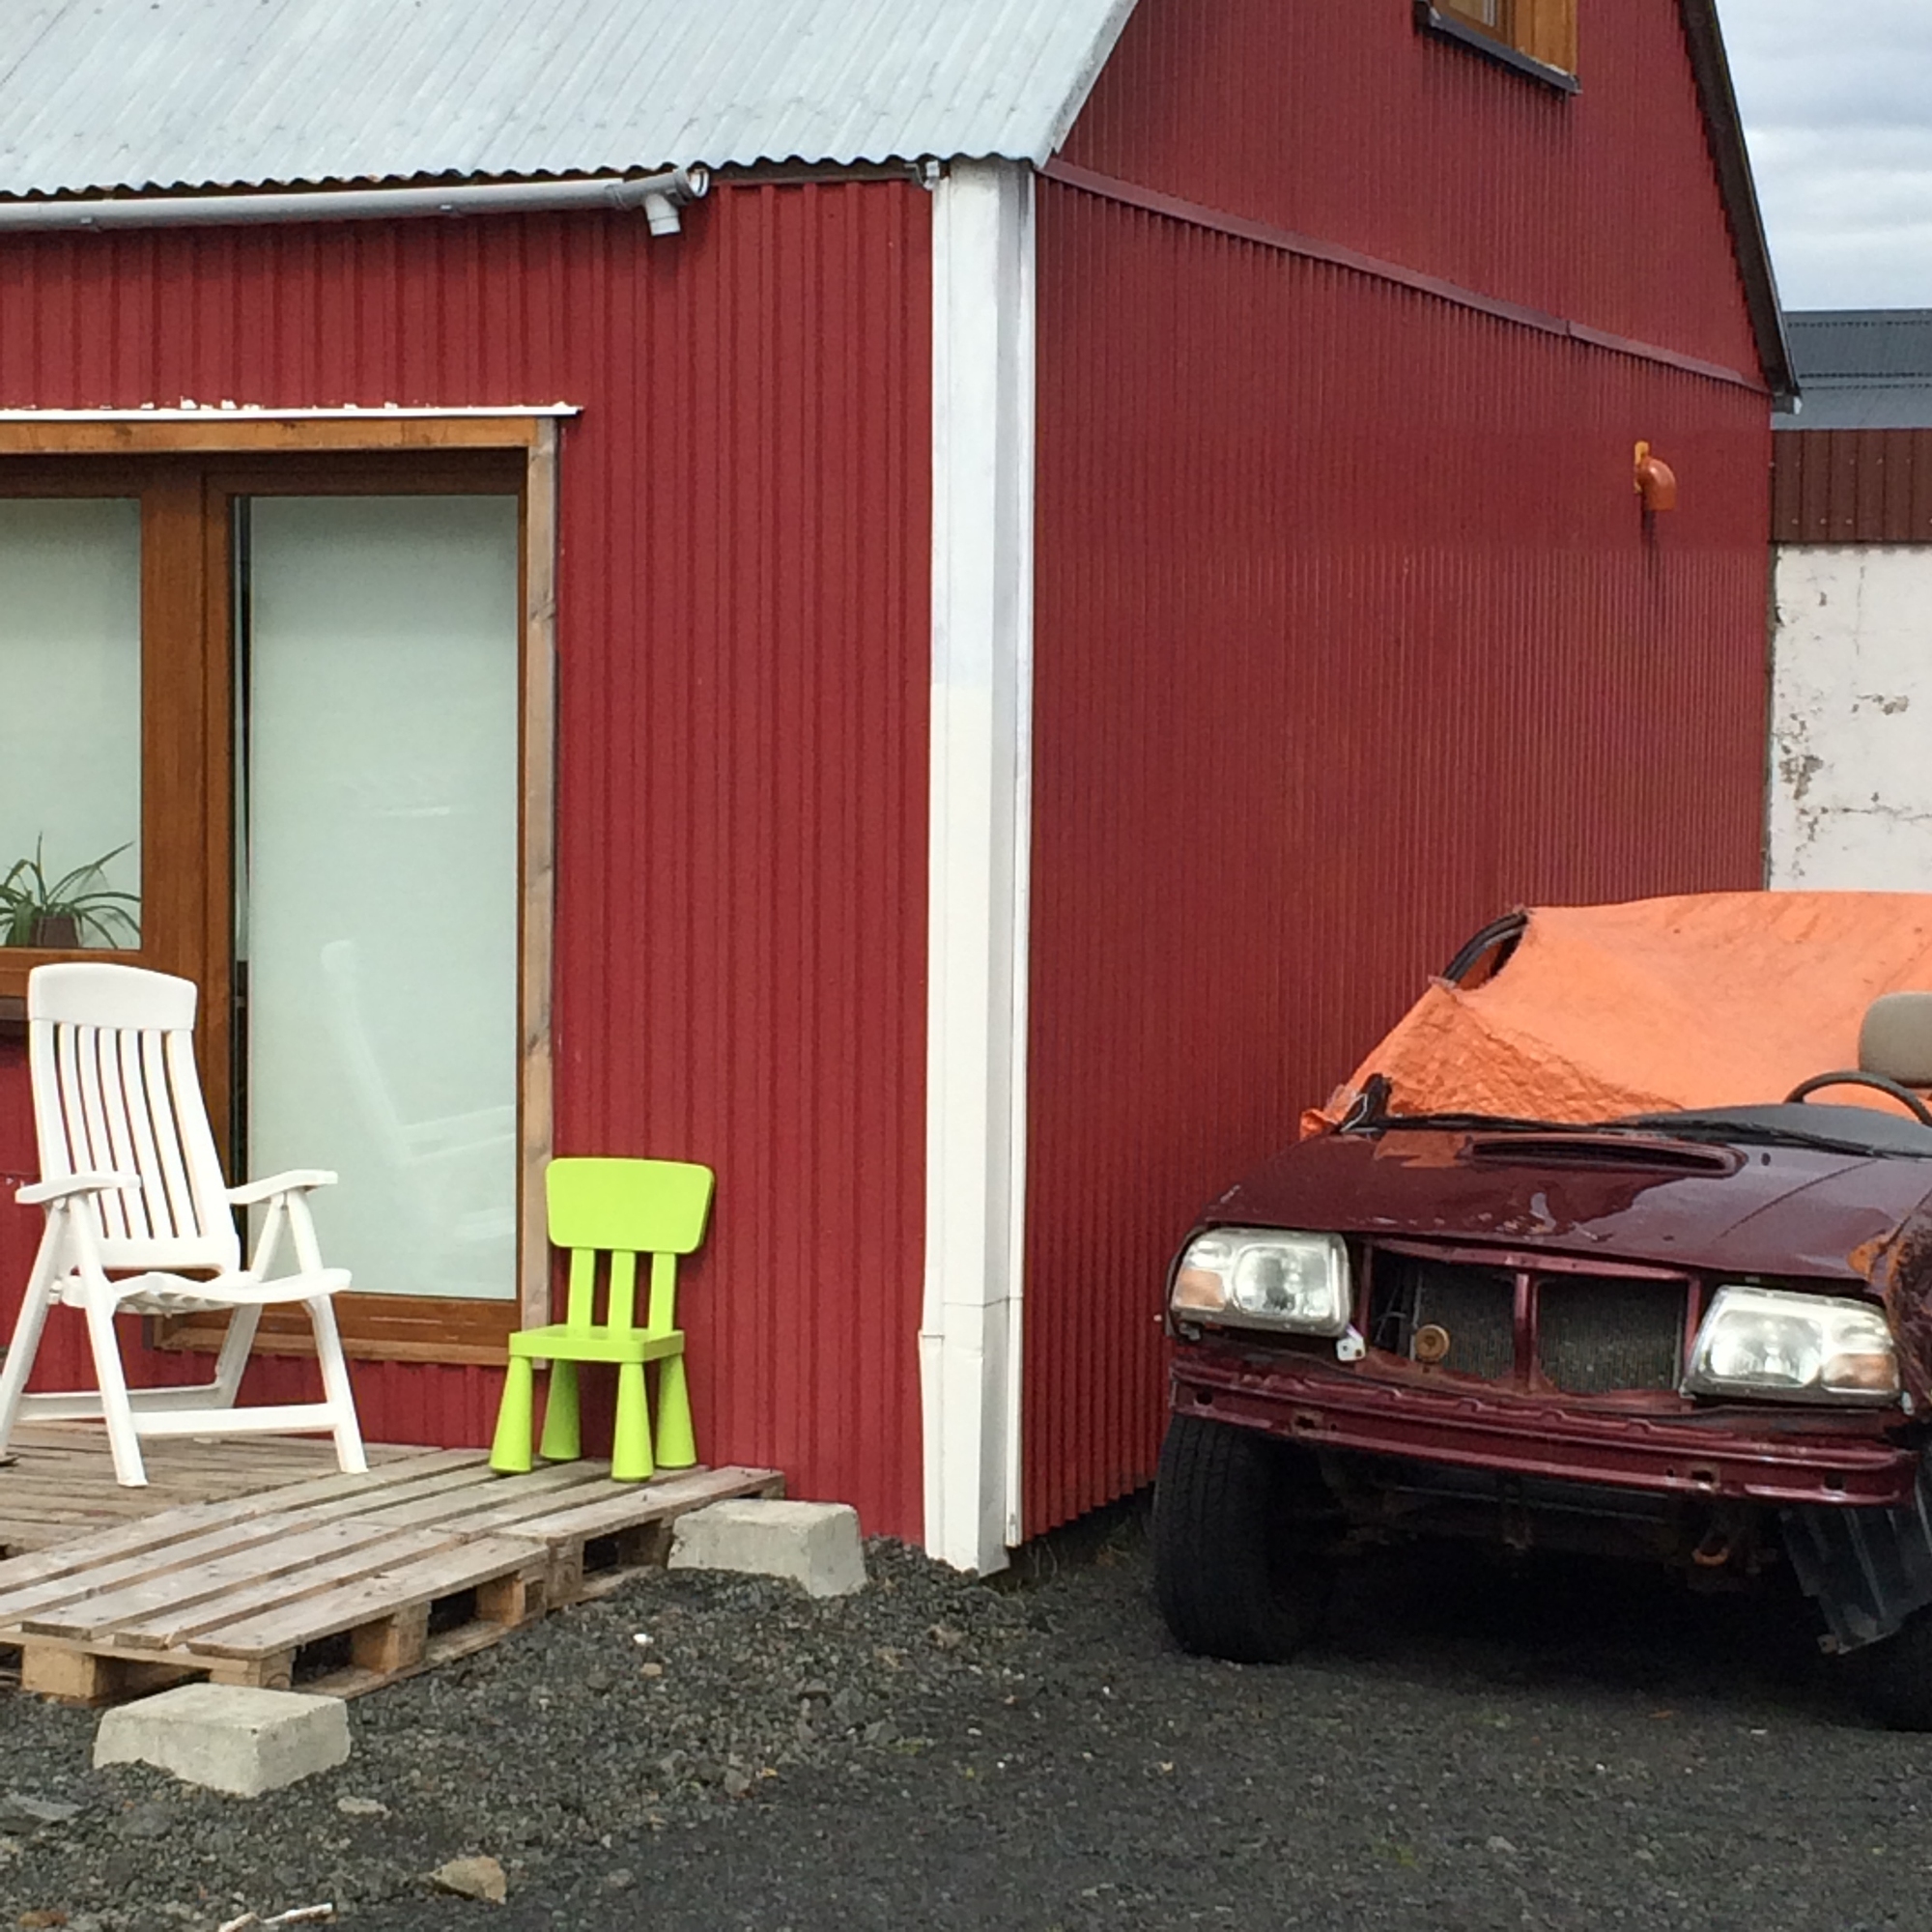 A walk in quirky Keflavík town